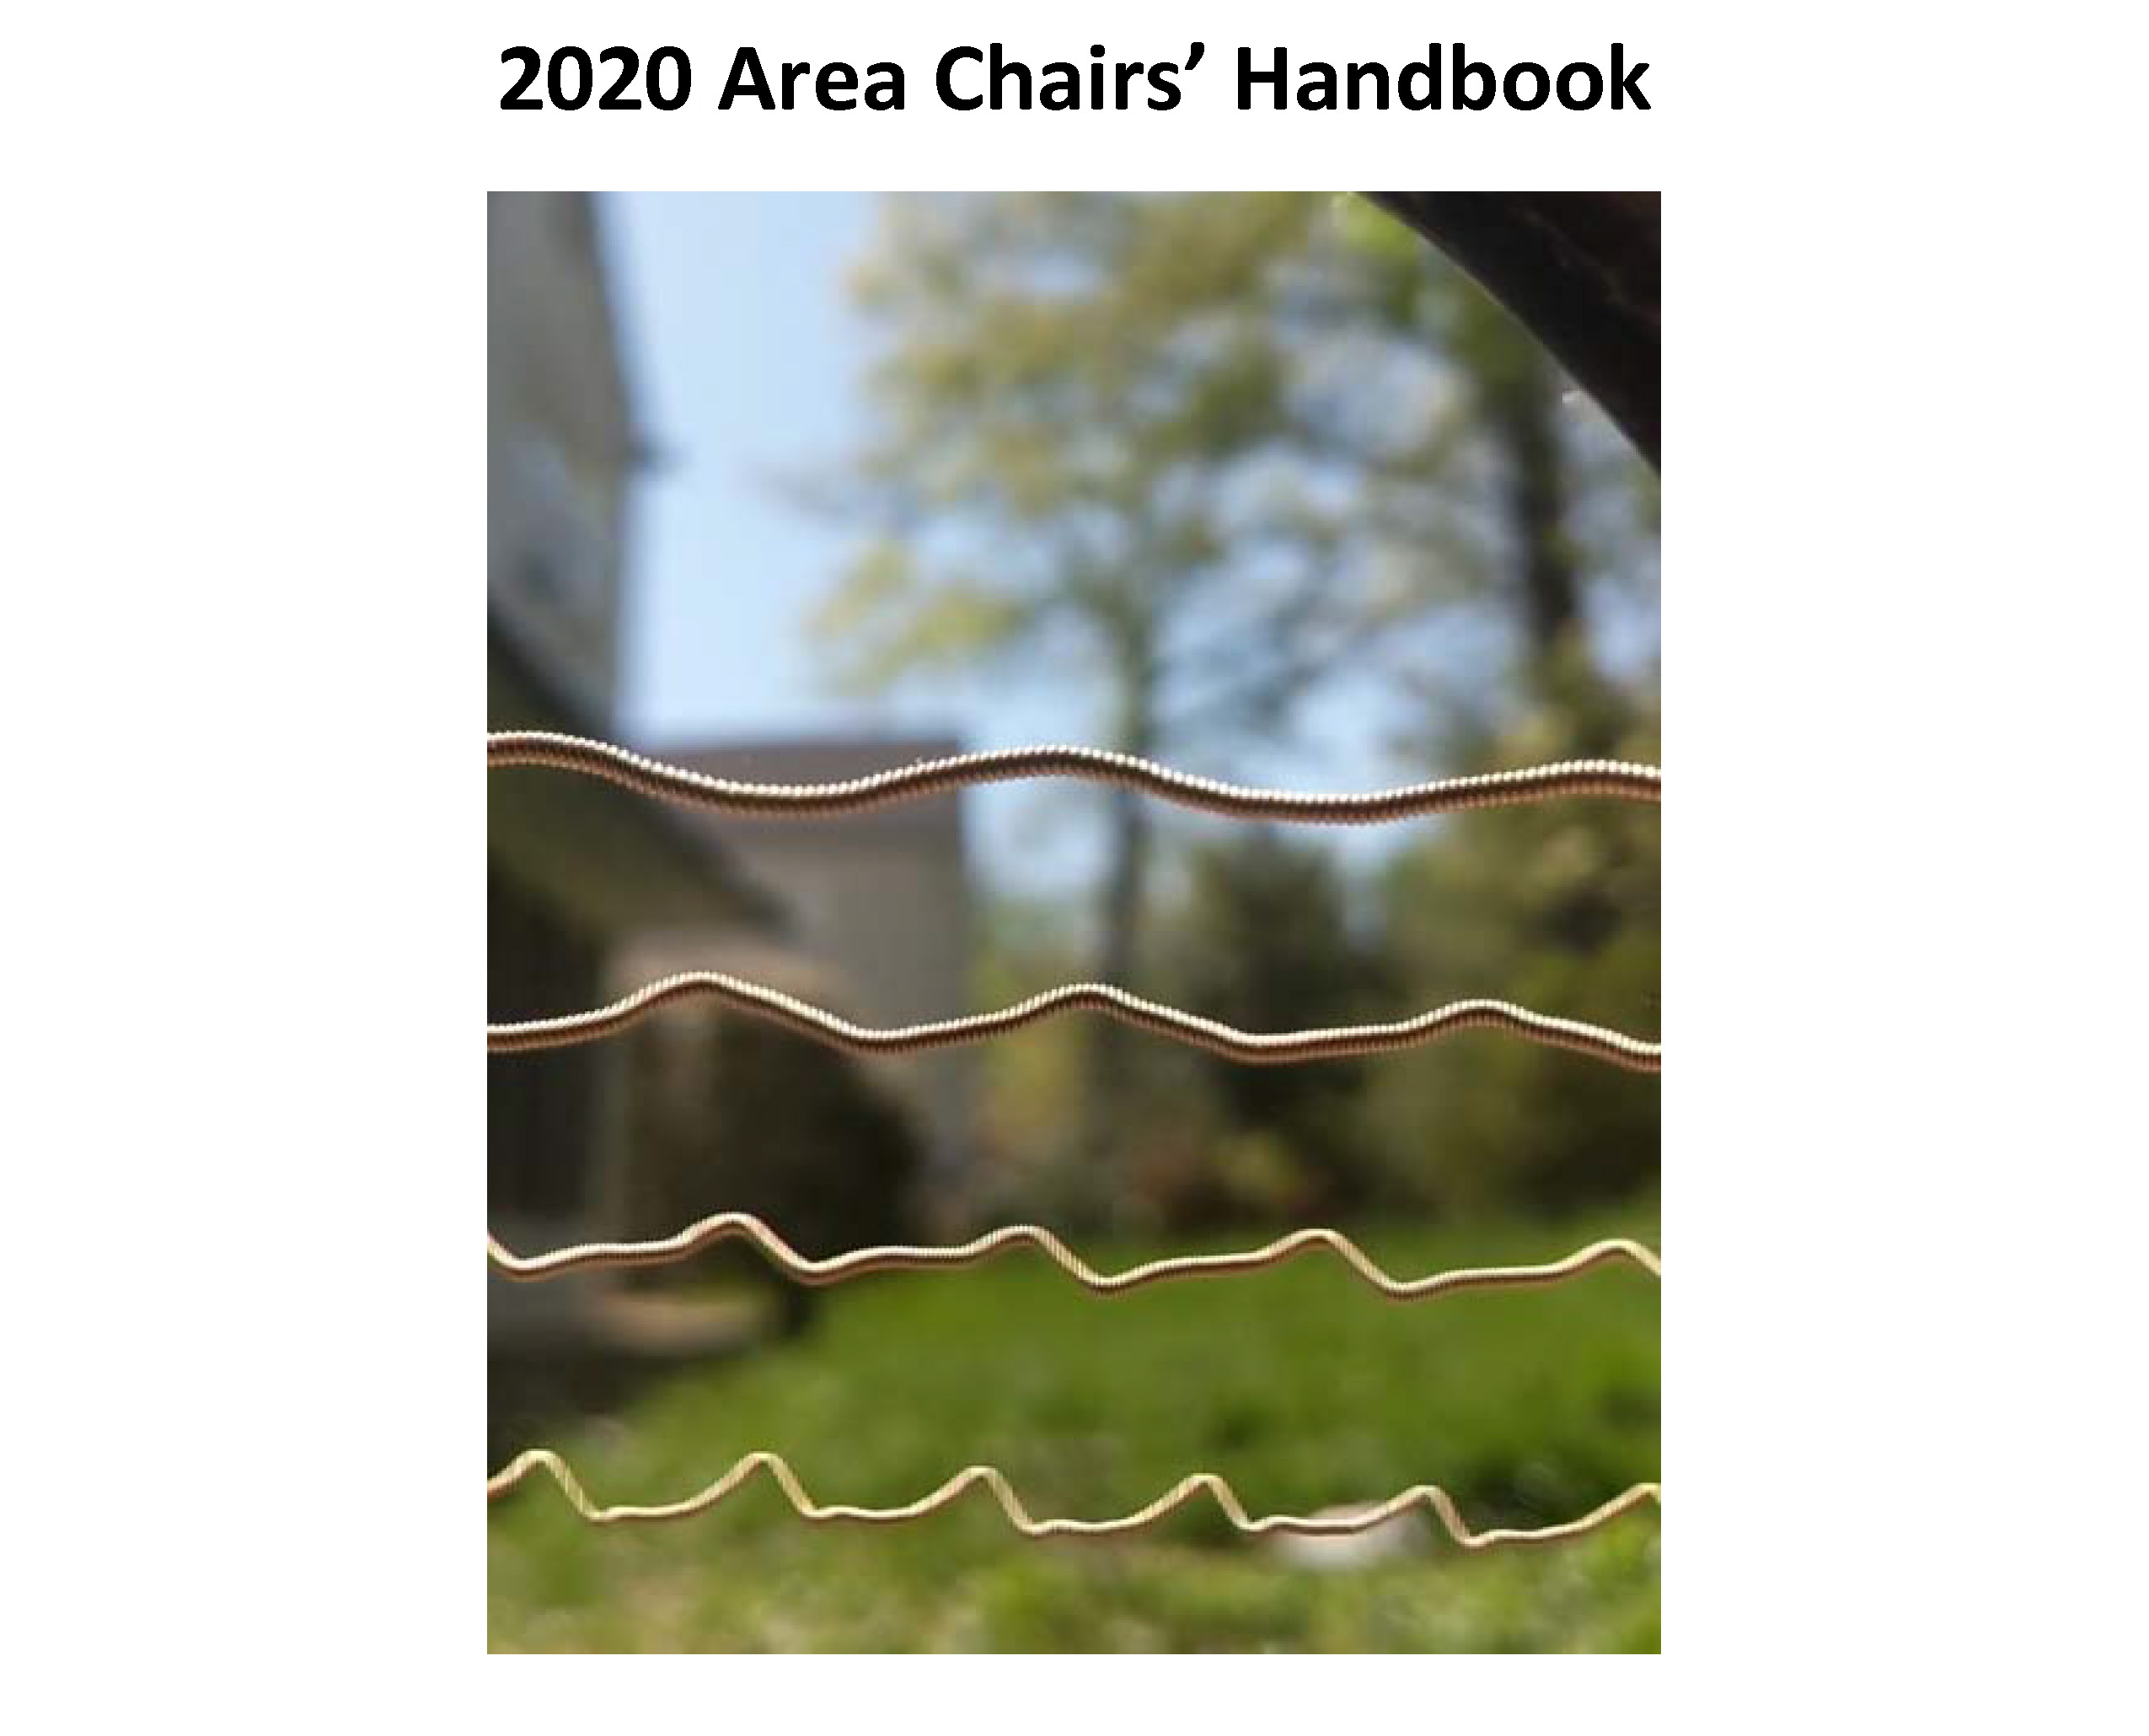 2020 Area Chair's Handbook cover